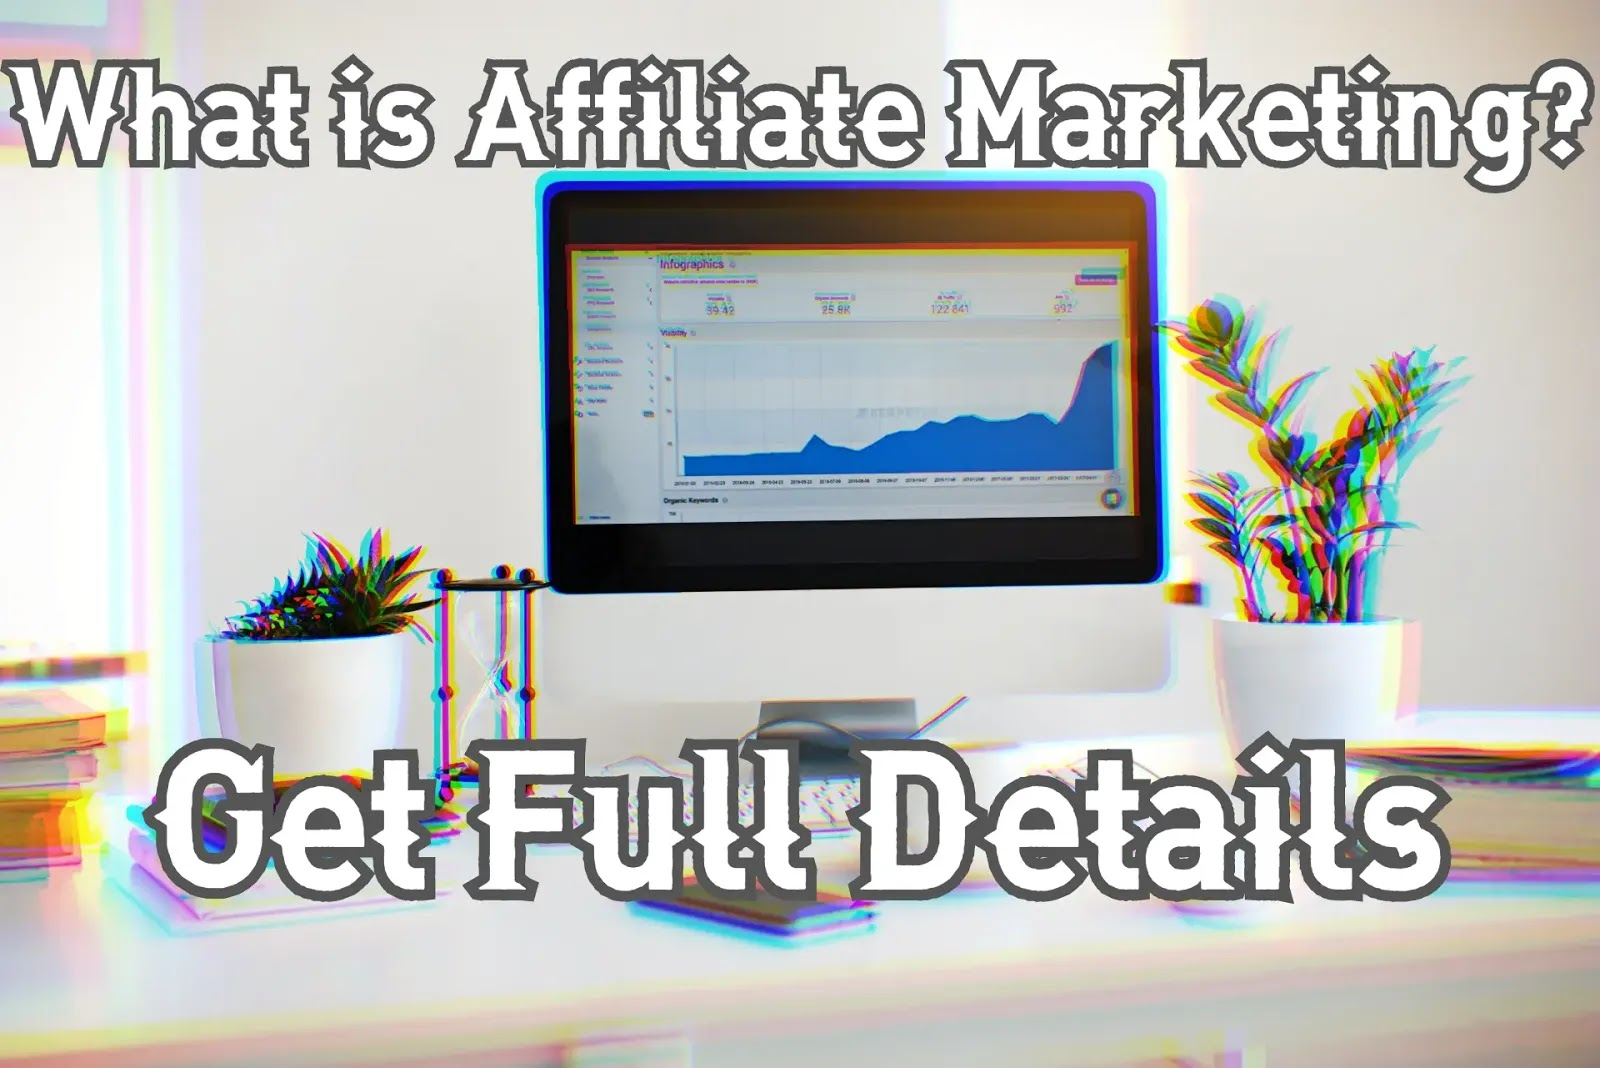 What is Affiliate Marketing? Full Deatils 2020